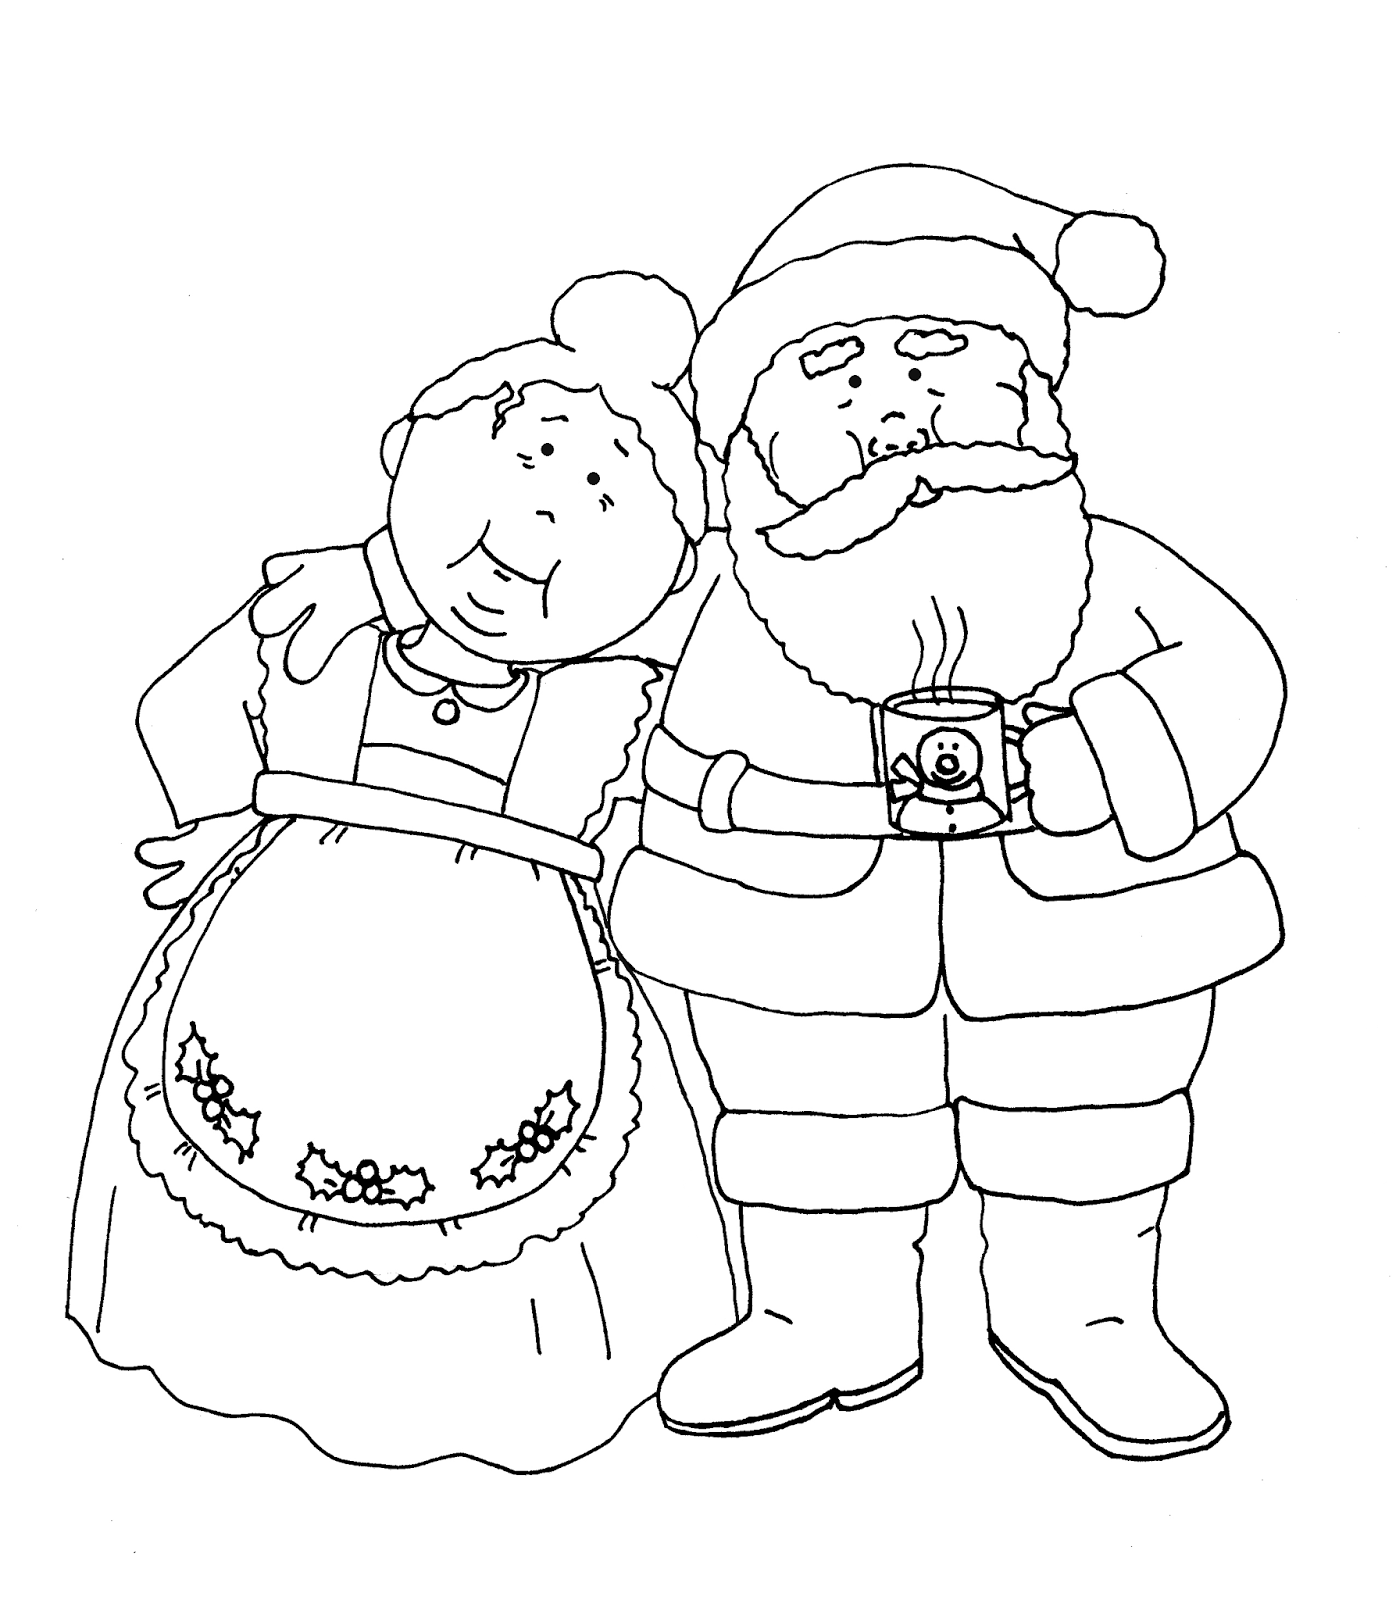 Free Dearie Dolls Digi Stamps: Santa and Mrs. Claus